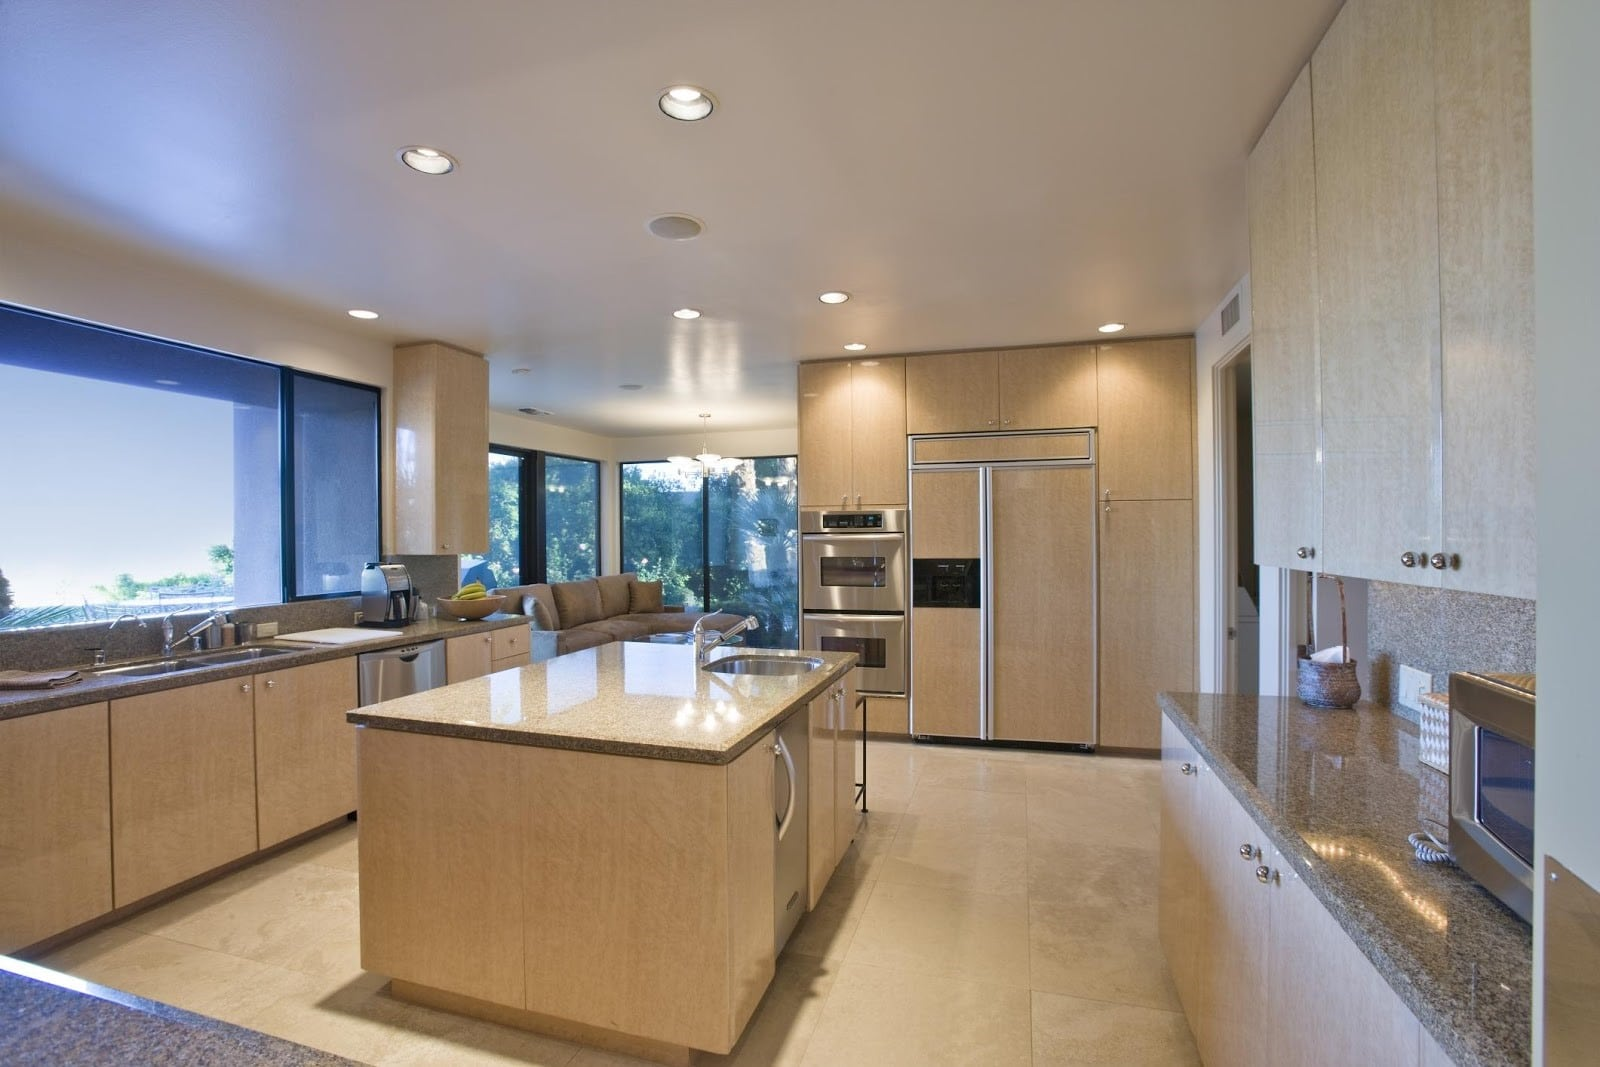 budget kitchen remodel nutone exhaust fans how to your on a homes for heroes